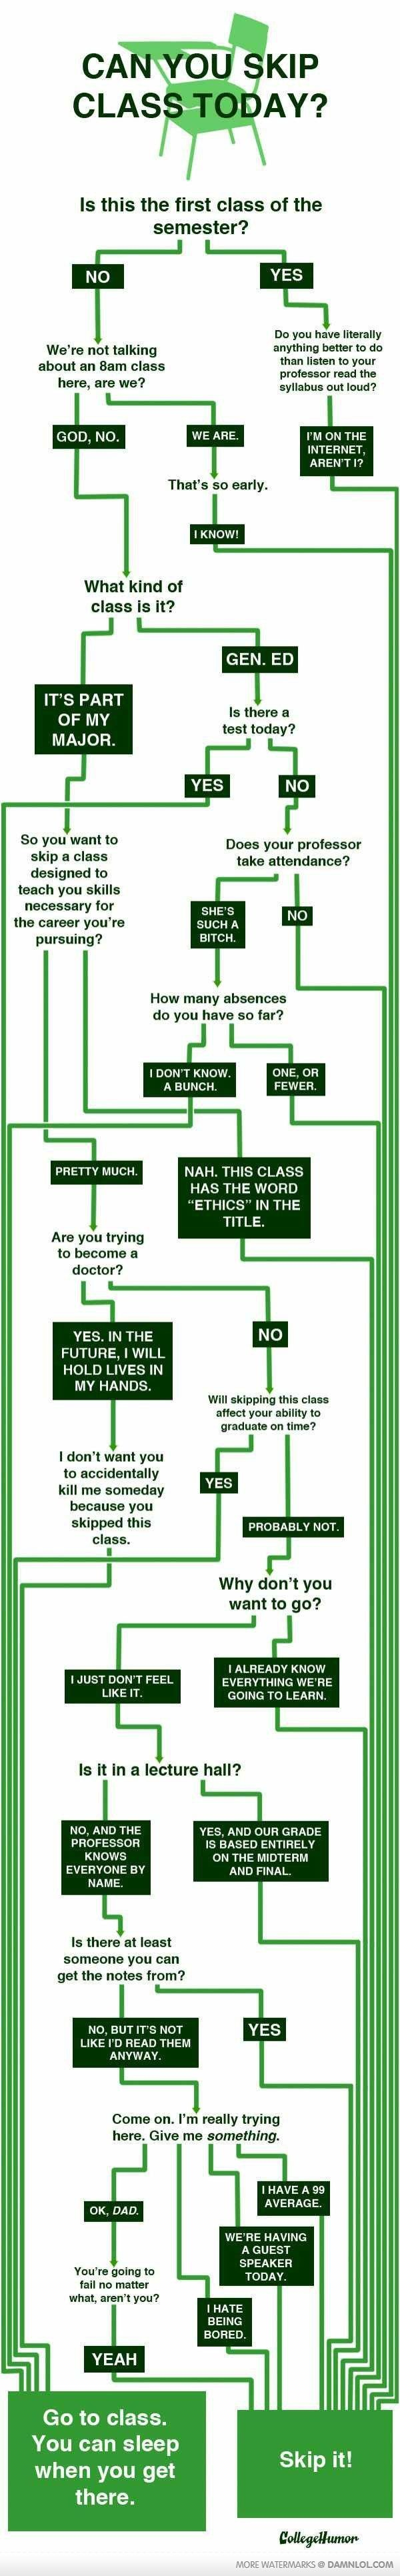 How to Do well in Your Least Favorite Class, and Cheat Sheet on whether you should go to Class or not. http://goo.gl/X26rr